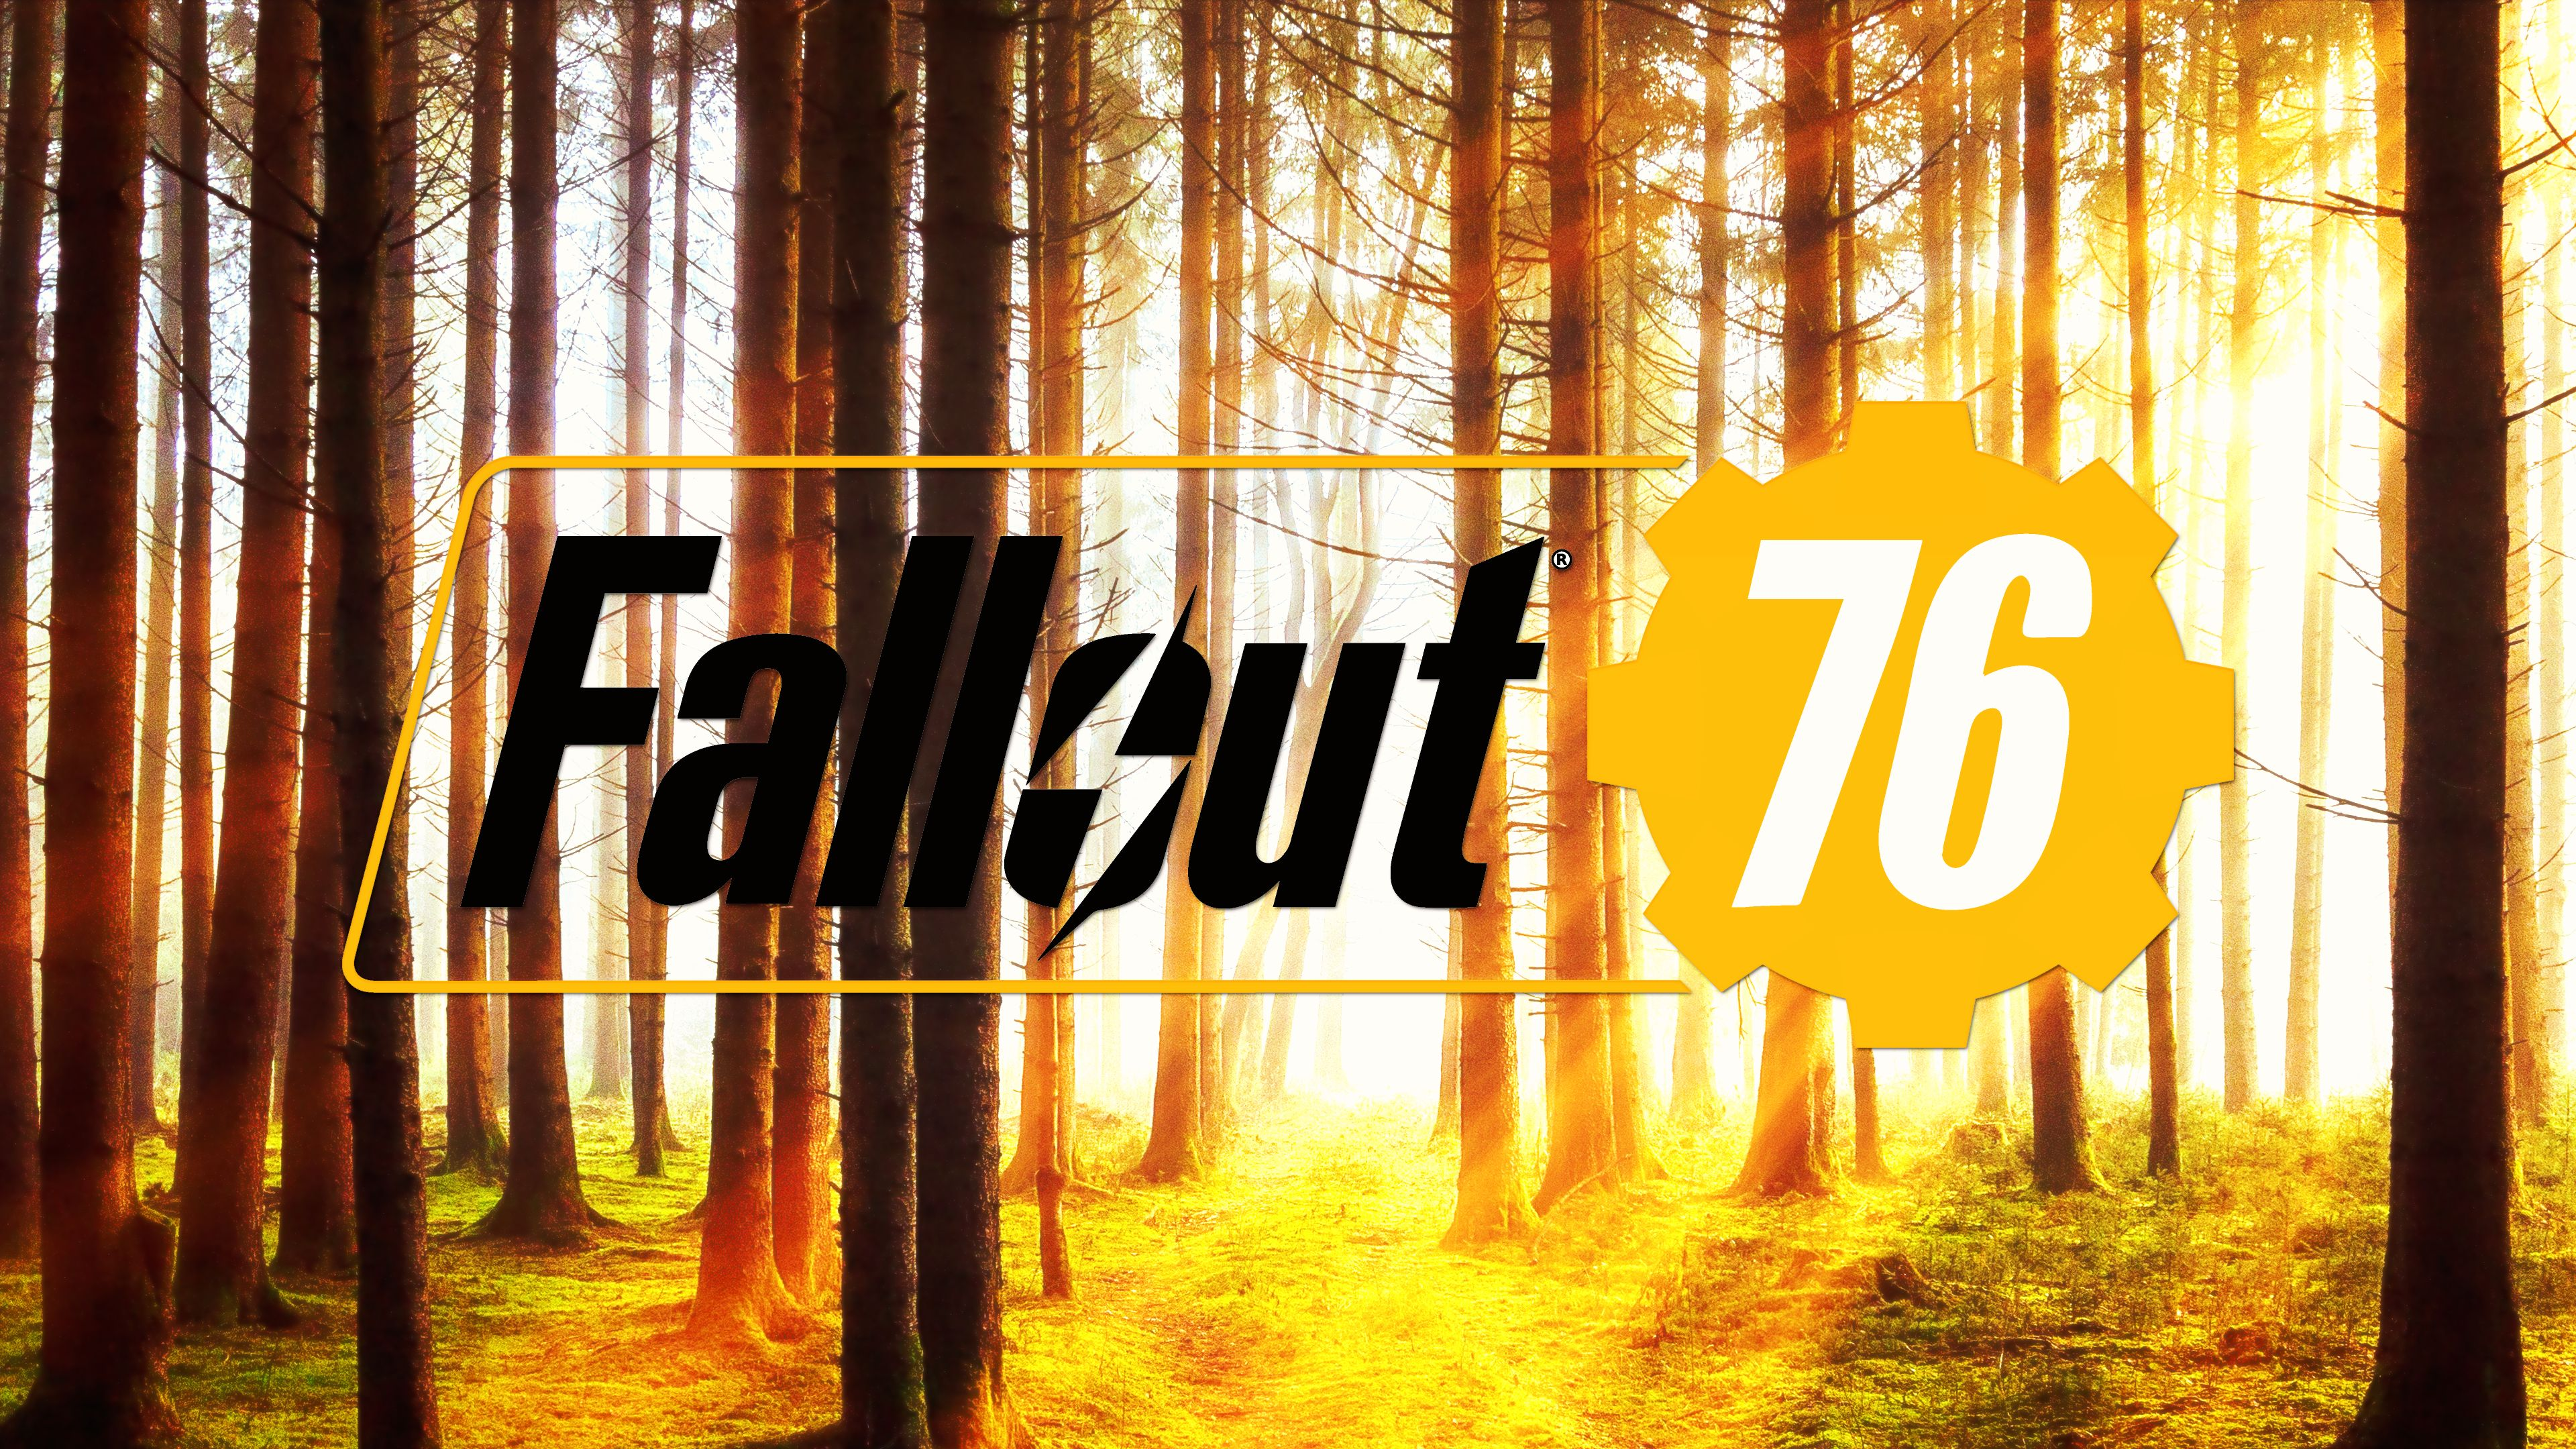 Fallout 76 4K Wallpapers - Wallpaper Cave